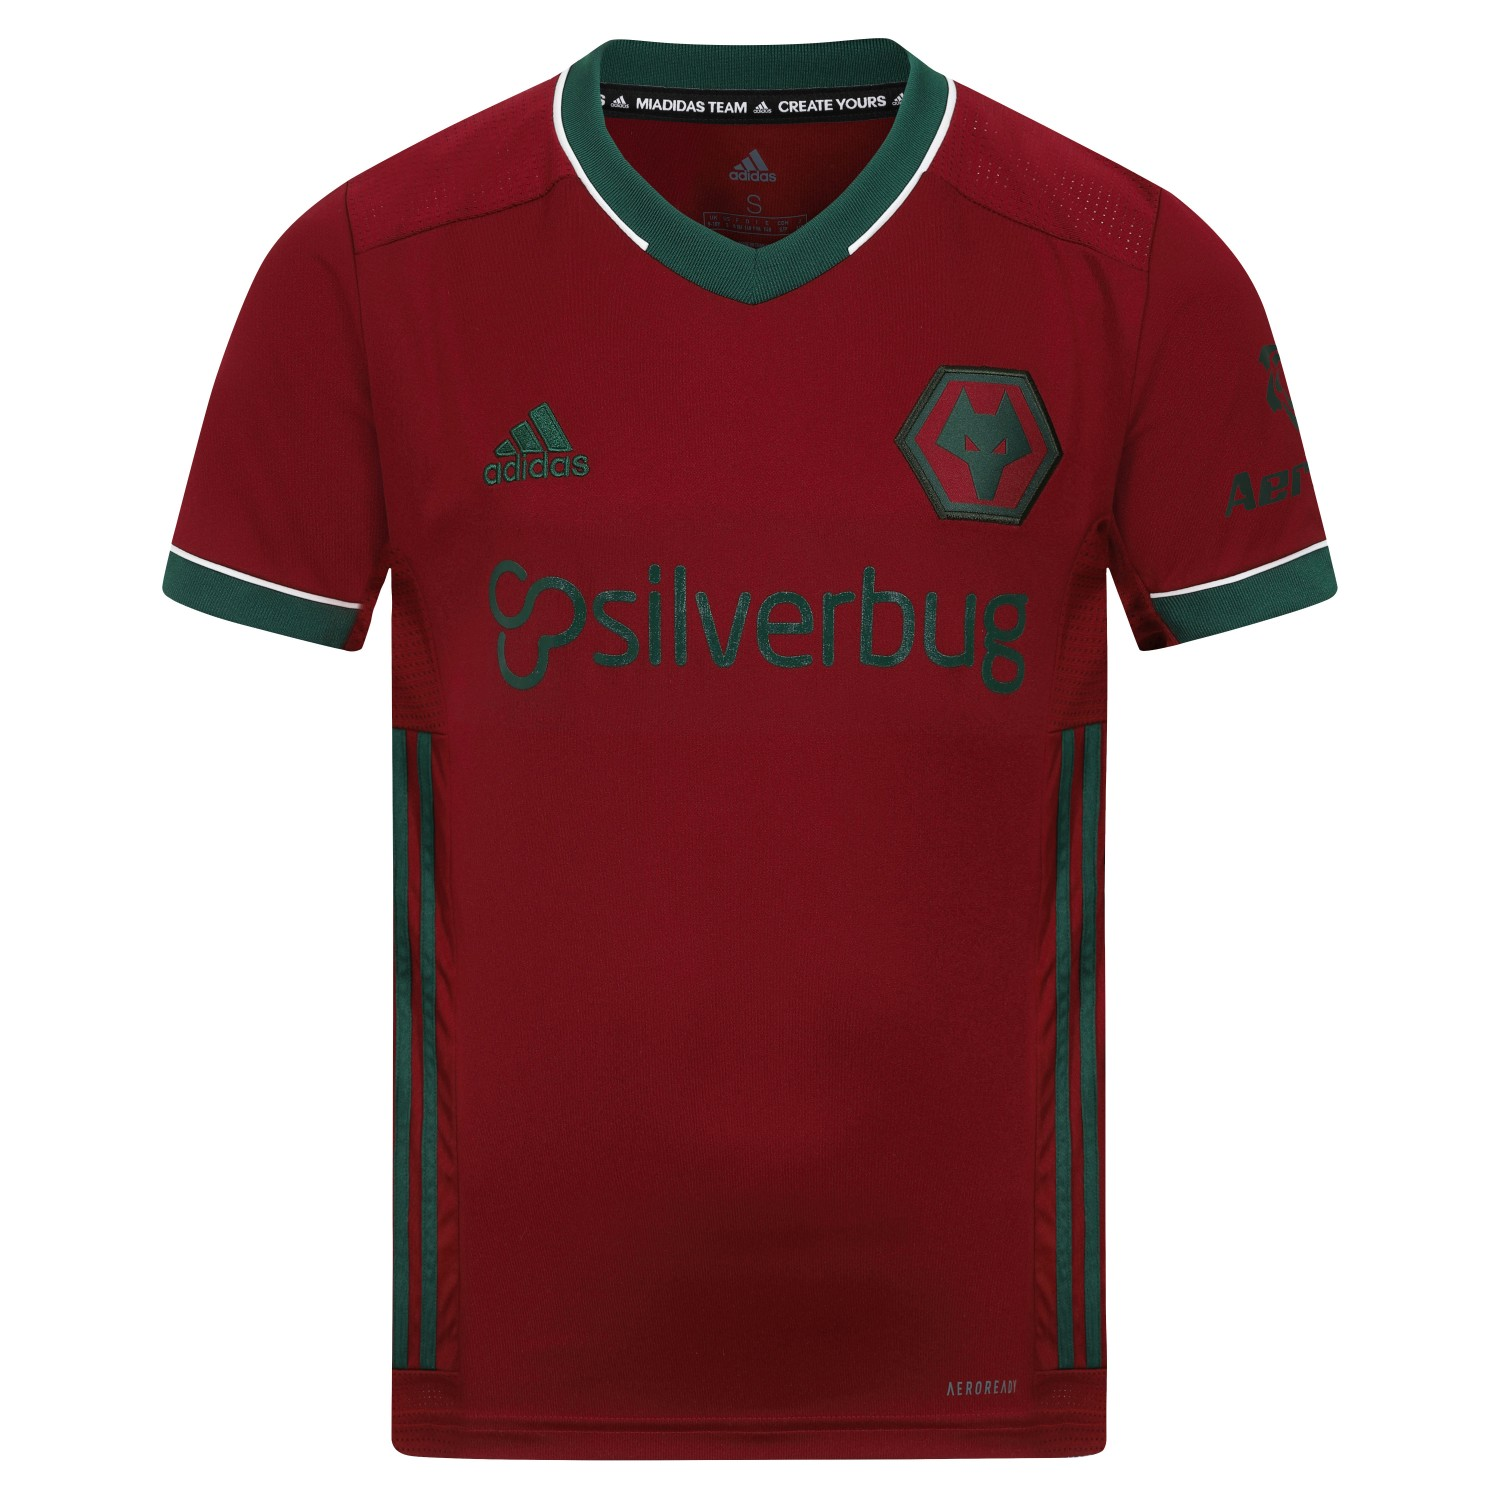 2020-21 Wolves 3rd Shirt - Junior This Wolves Shirt stands out from the crowd with a Burgundy and Green contrasting colour way Throw it on to stand with our team home or away.The soft fabric displays a Green contrasting woven crest on the chest.This Wolves Shirt is made with recycled polyester to save resources and decrease emissions.Moves sweat away from your skin so you stay dry every step of the way so sweat but don´t sweat it.100% rec polyesterRibbed V-neck Moisture-absorbing AEROREADY